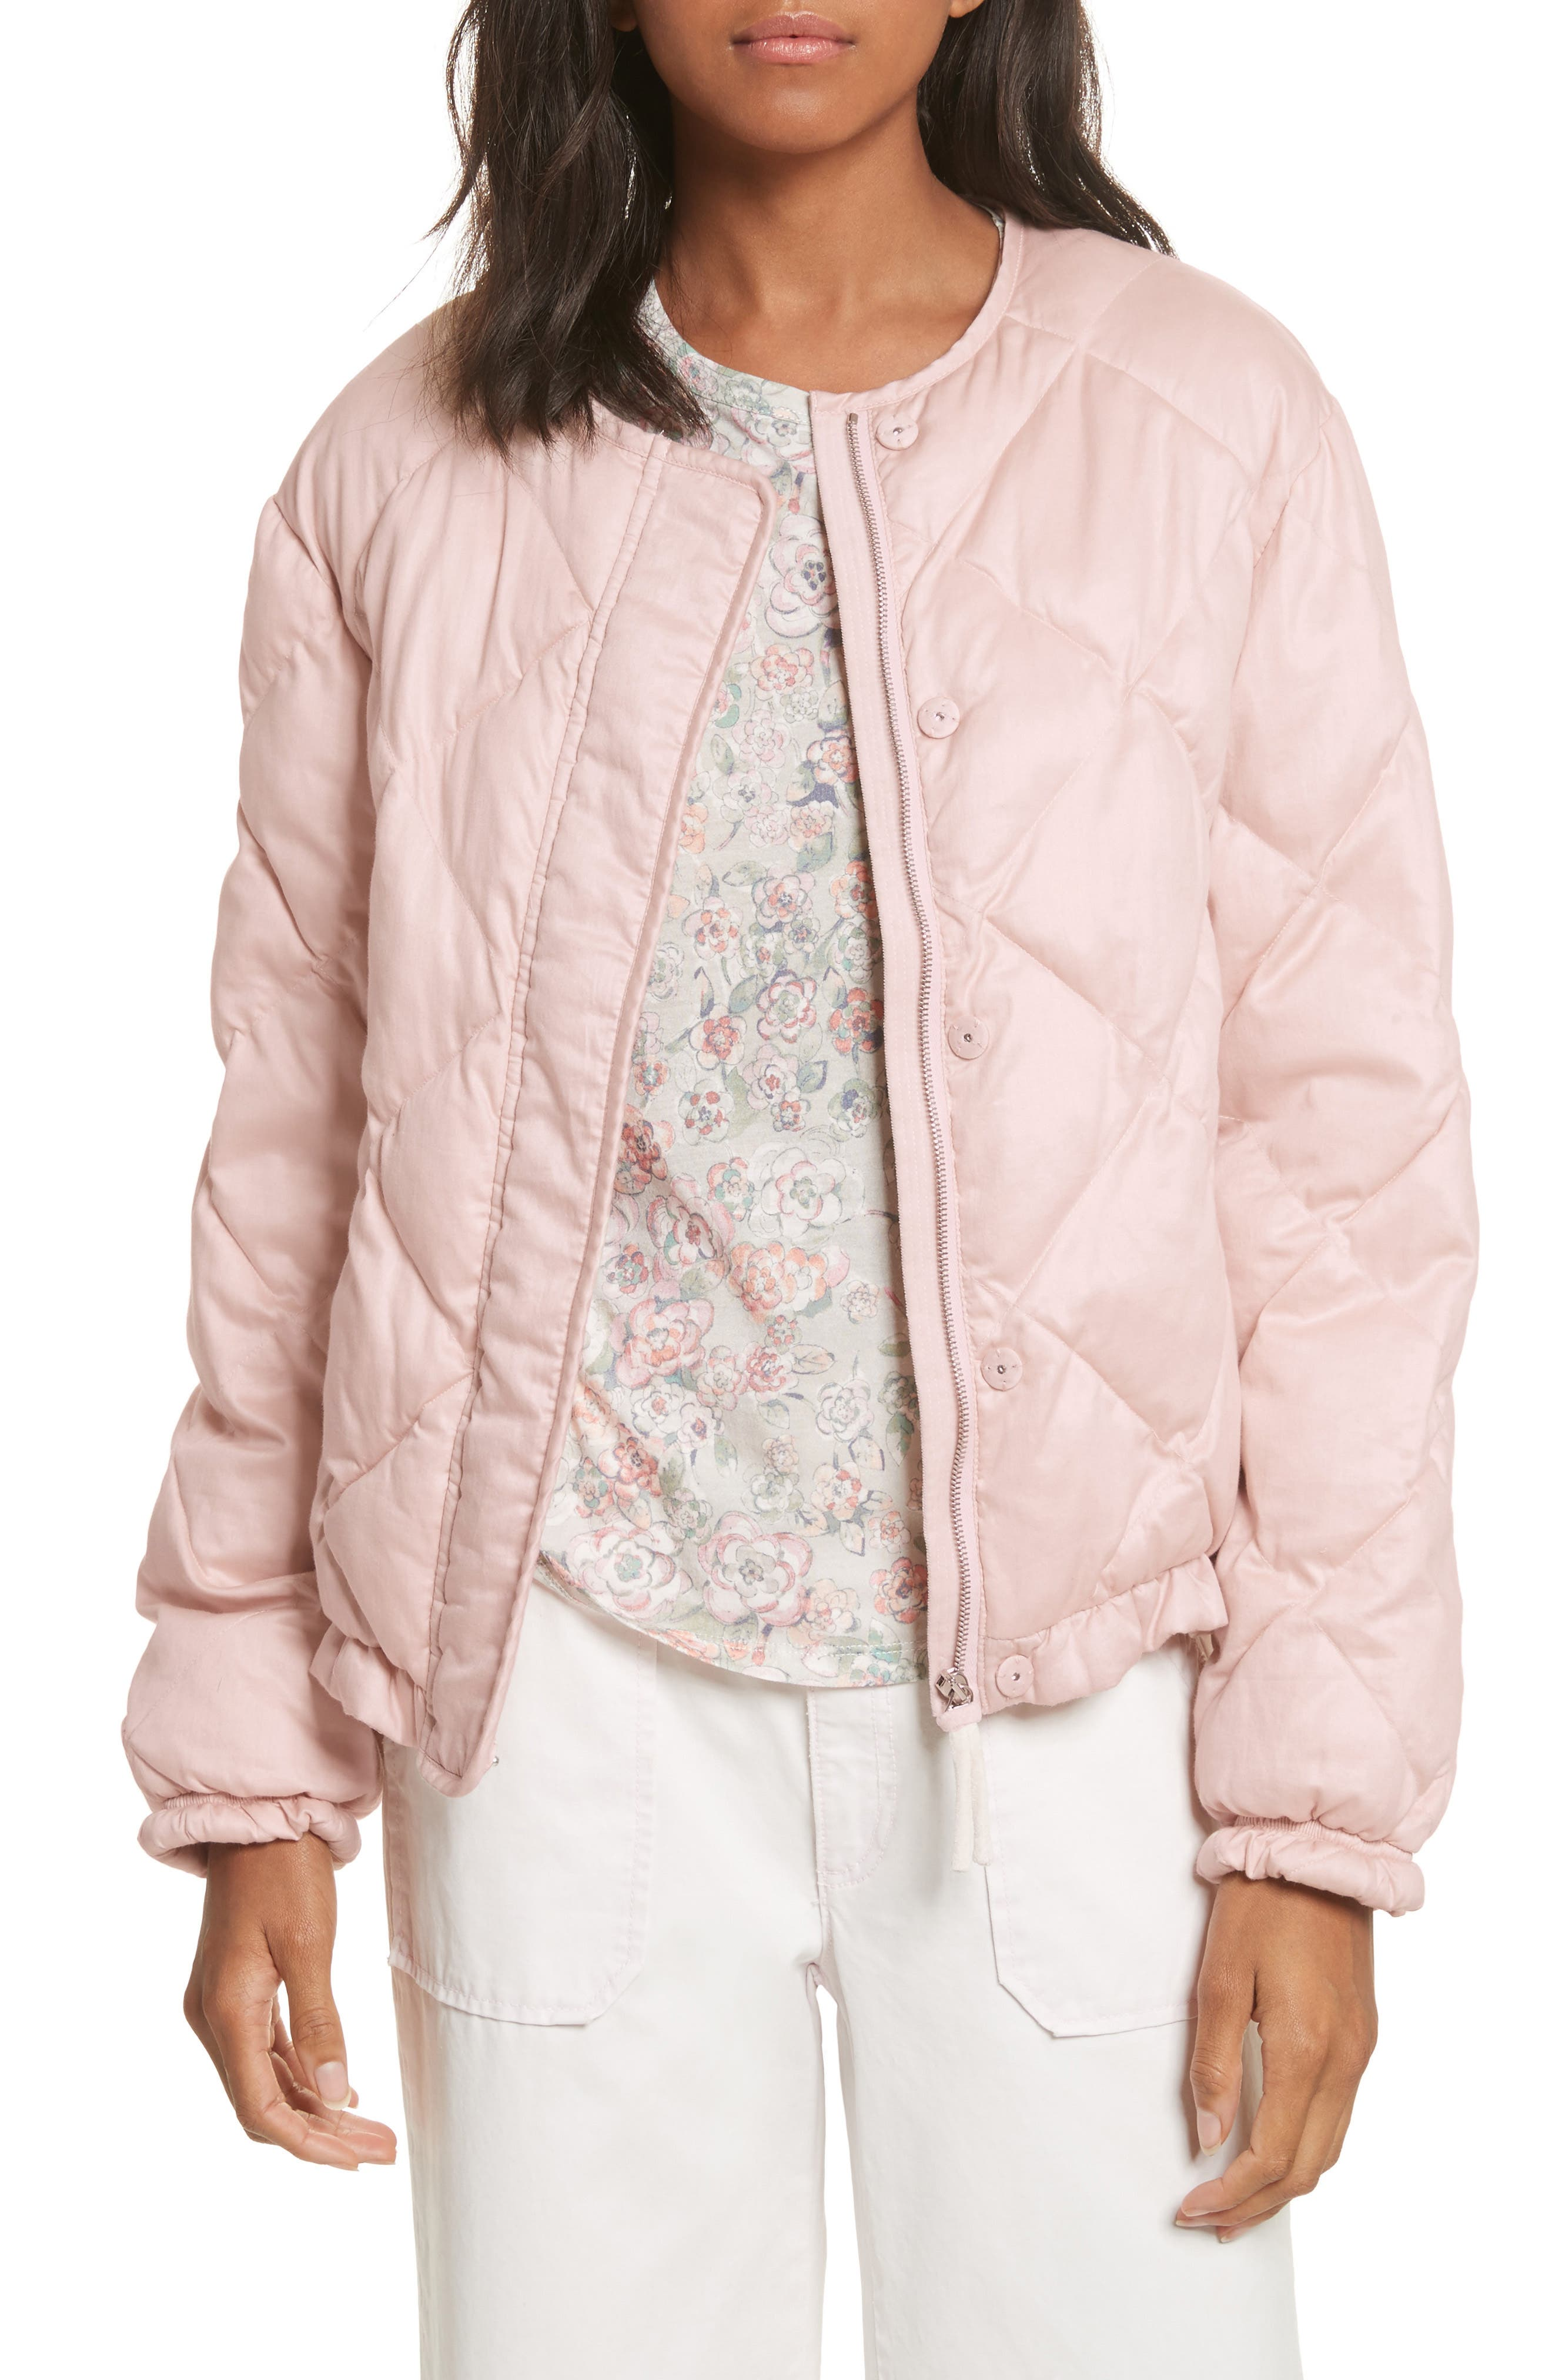 La Vie Rebecca Taylor Quilted Washed Sateen Jacket